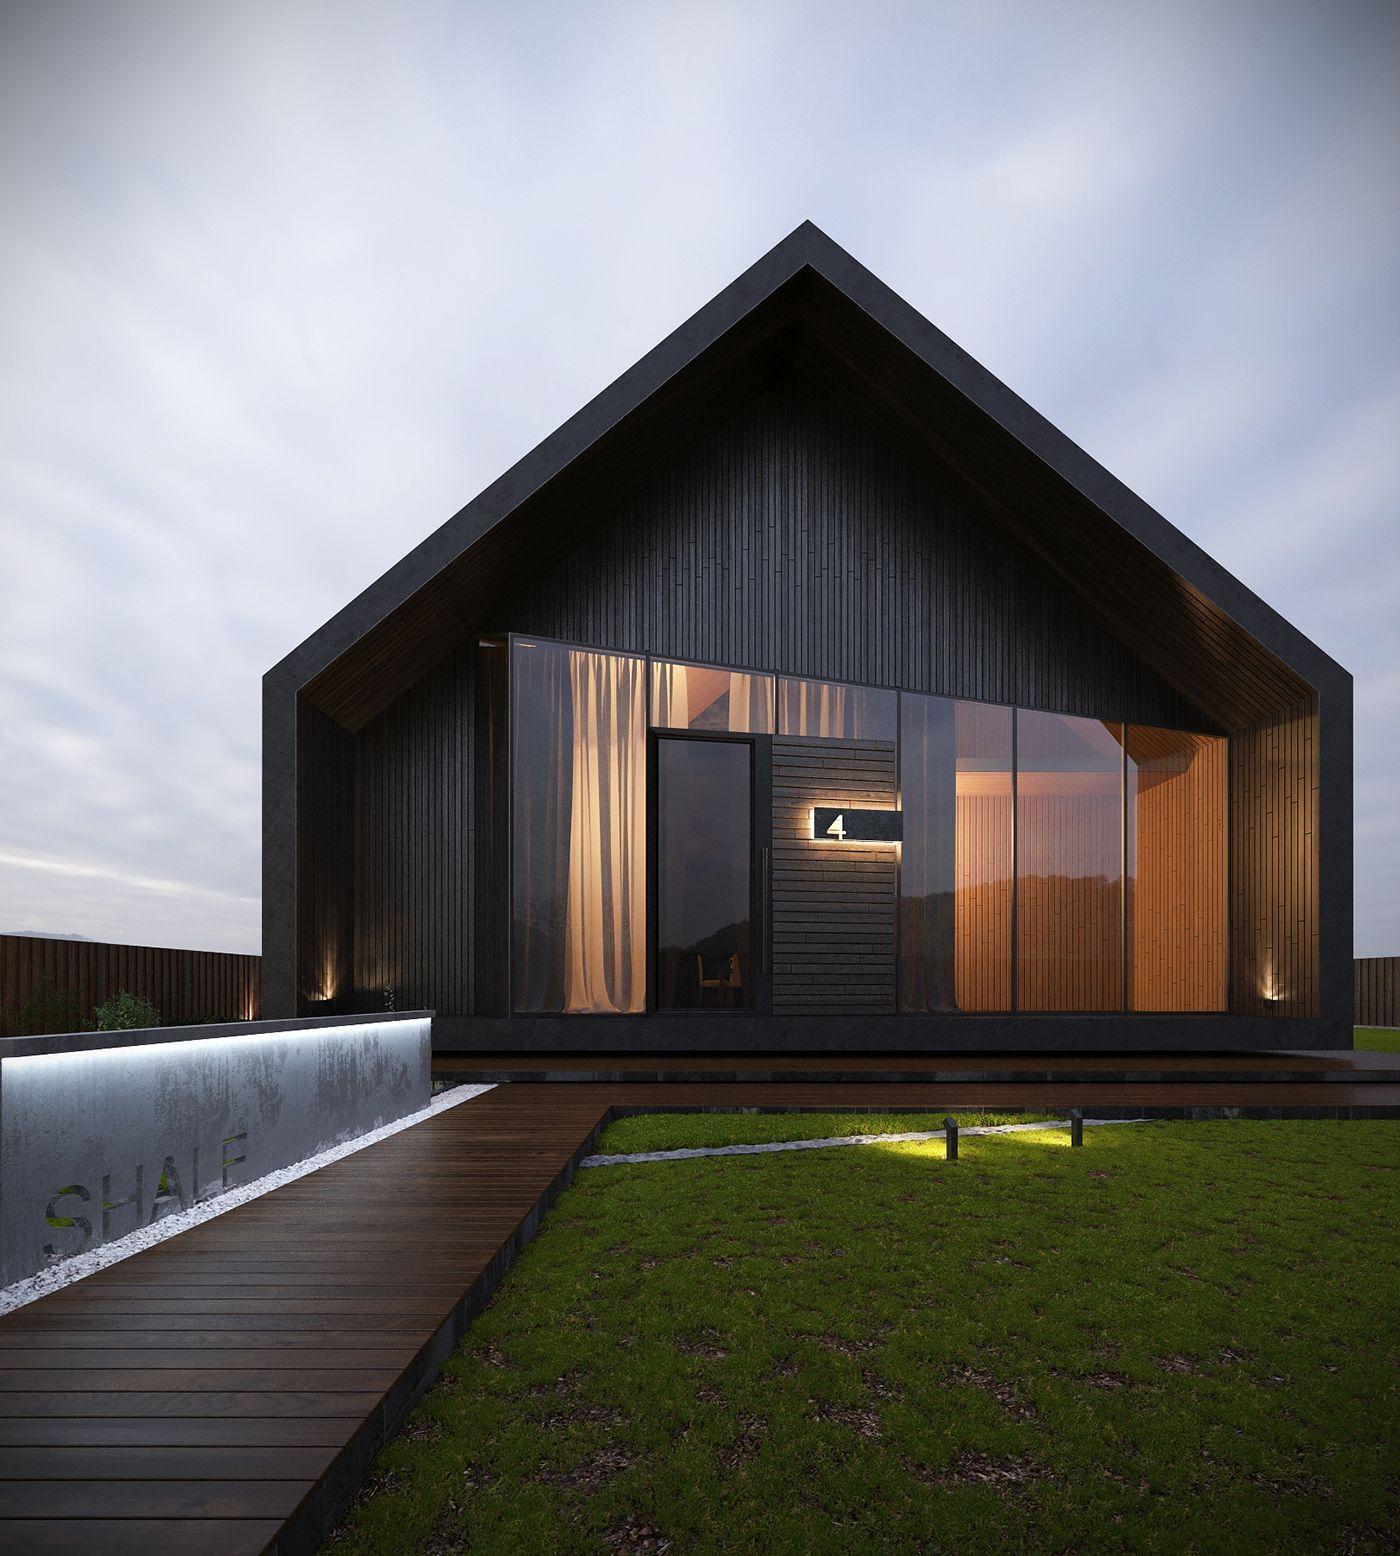 Homedesignideas Eu: The Latest Breaking News In The Architecture World (com